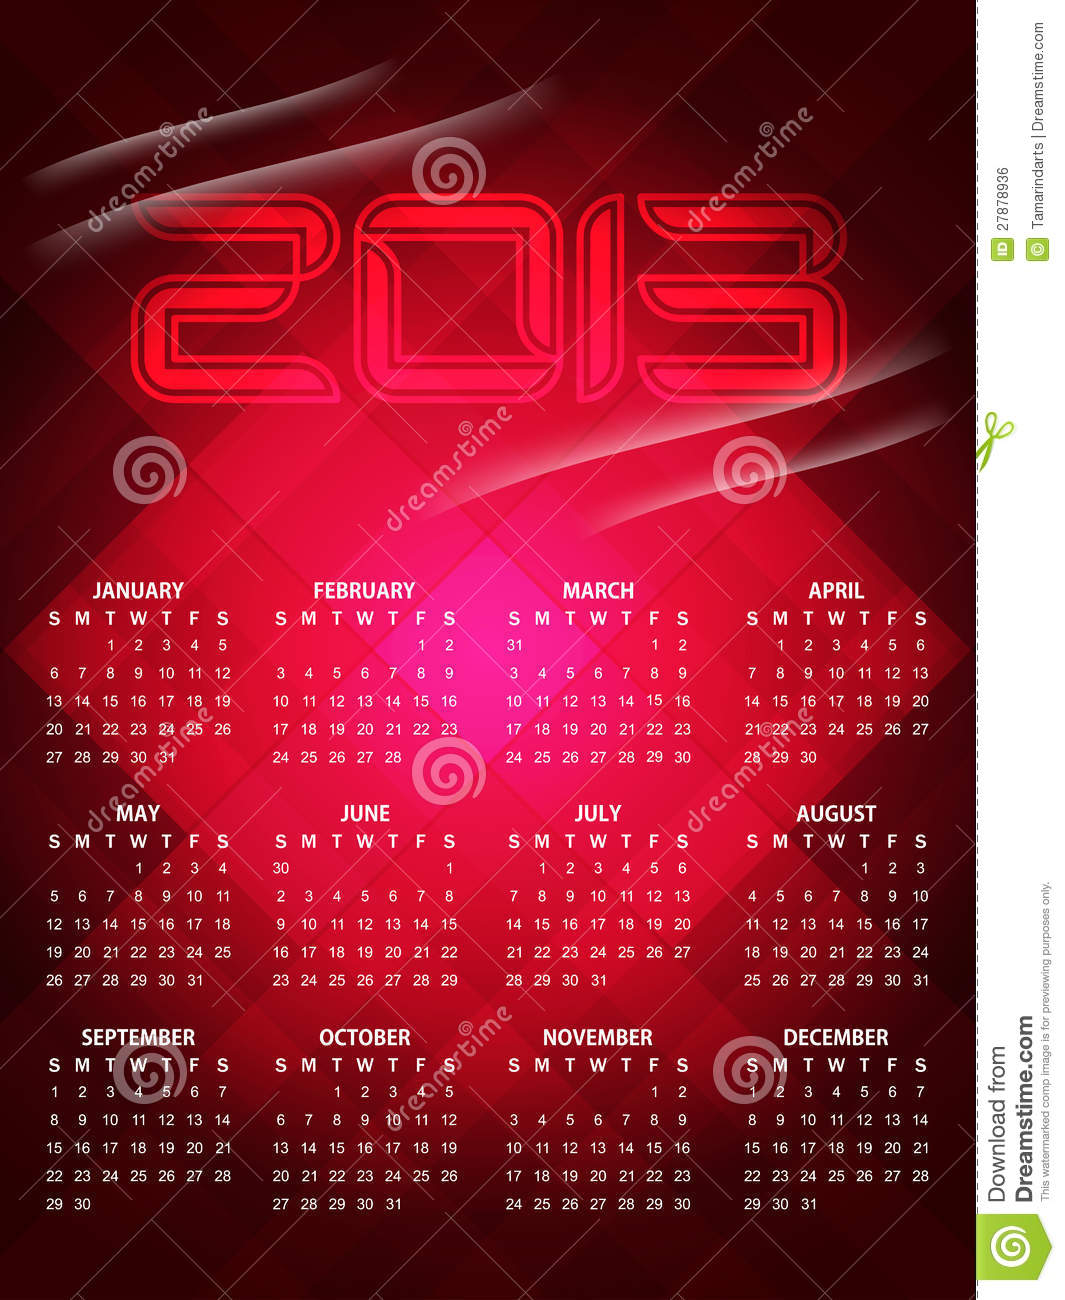 Beautiful Calendar Design : Beautiful calendar design for royalty free stock